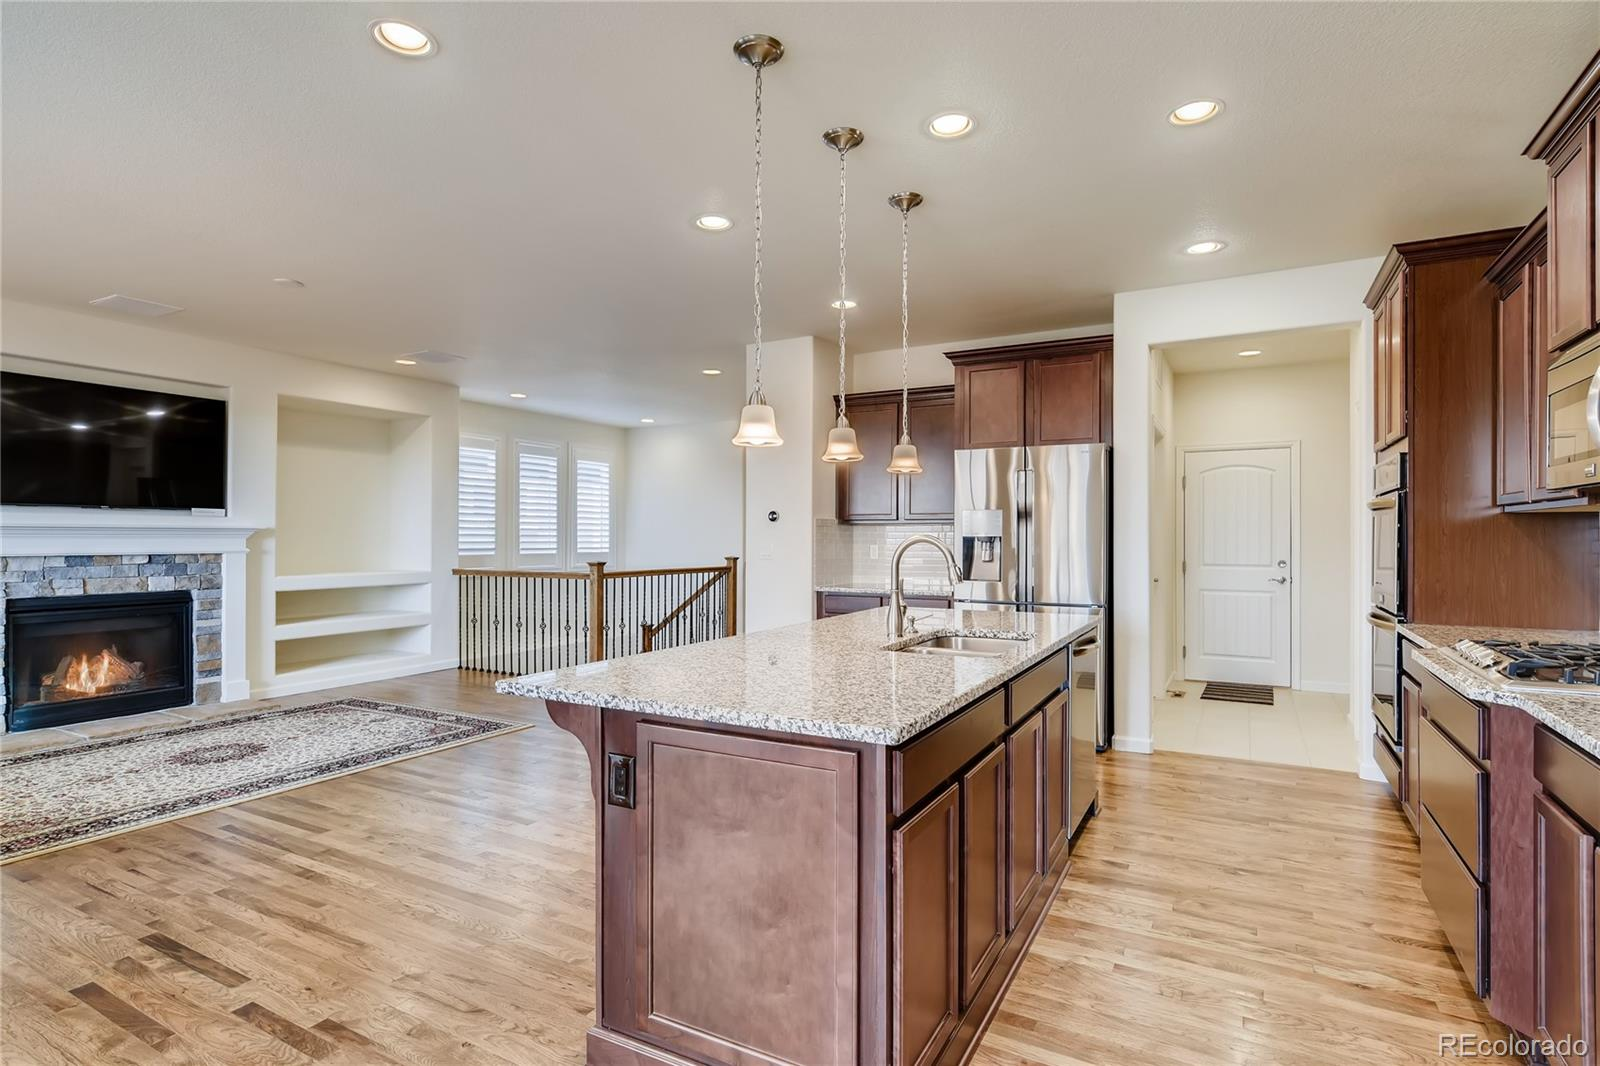 MLS# 5348867 - 11 - 1514 Promontory Bluff View, Colorado Springs, CO 80921